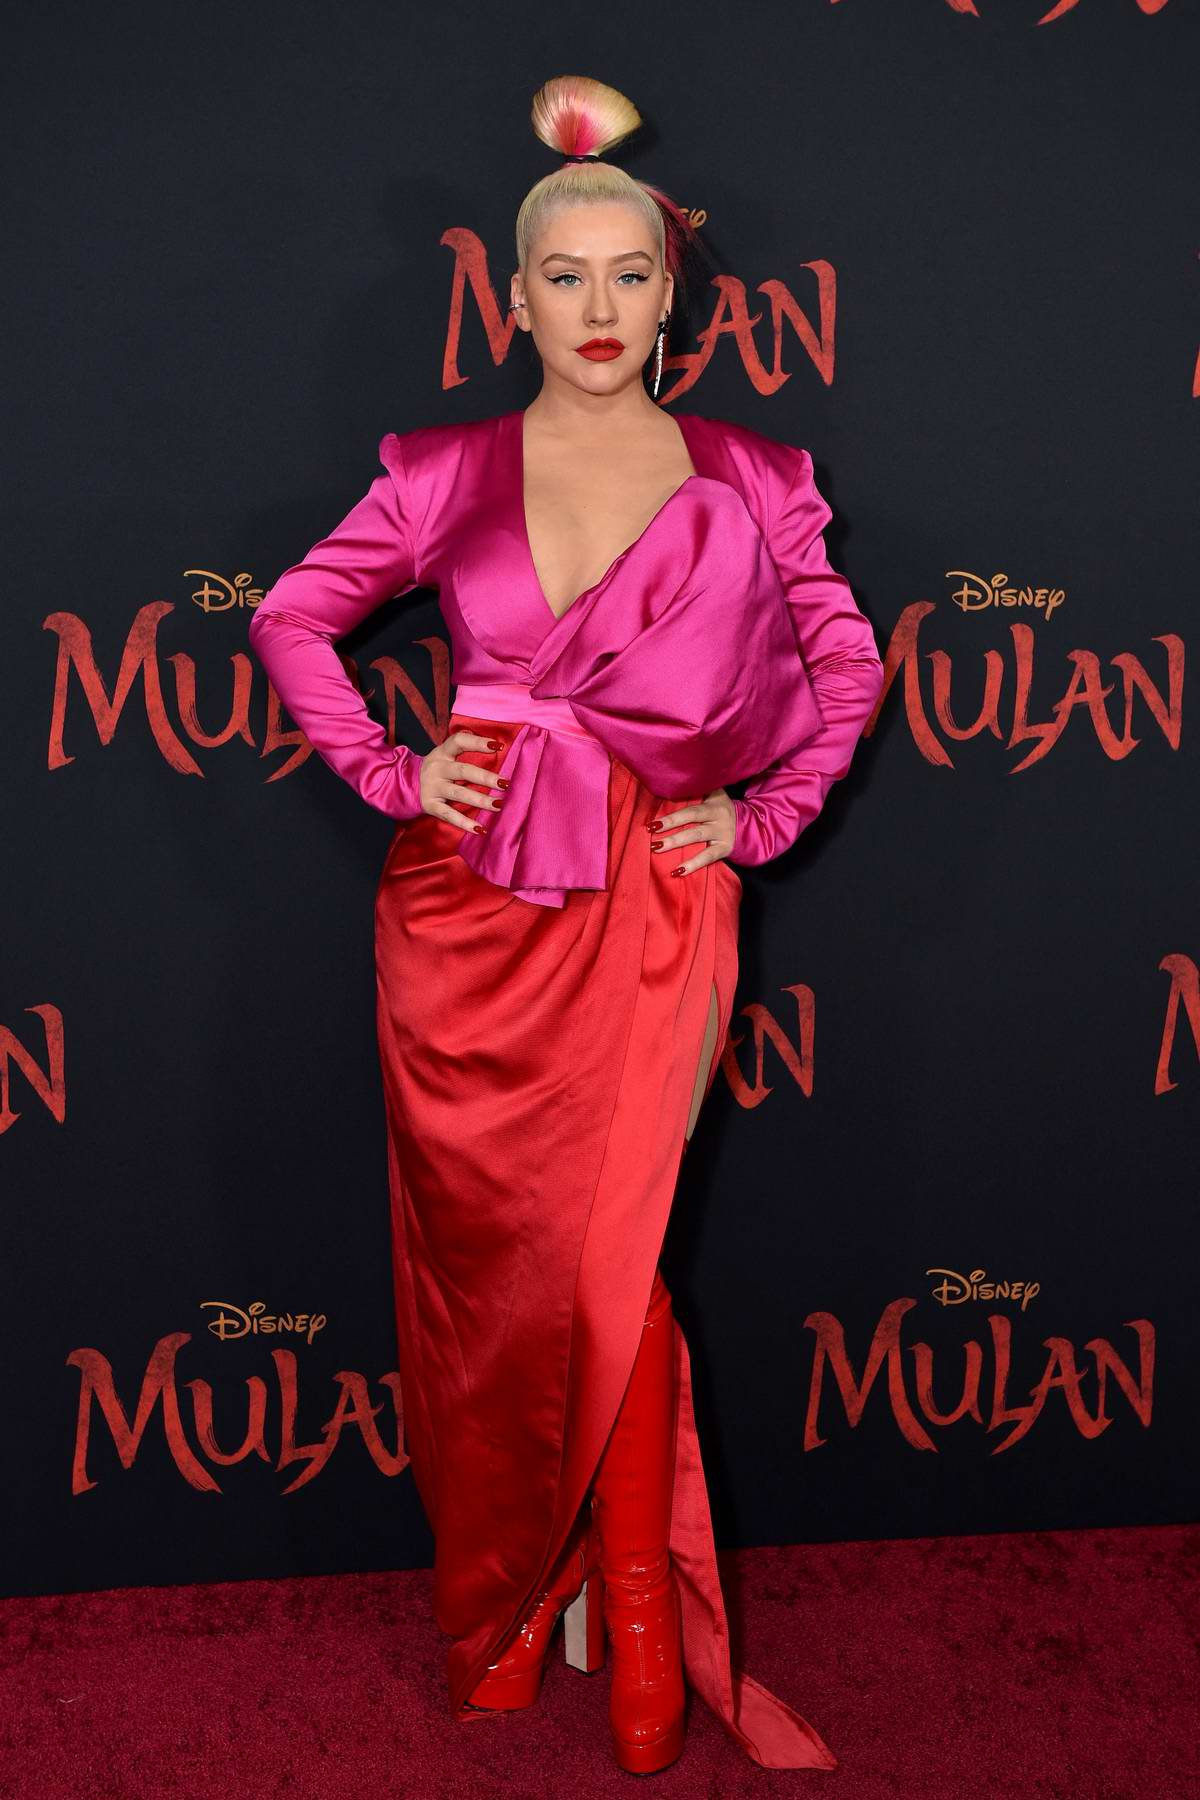 Christina Aguilera attends the Premiere of Disney's 'Mulan' at Dolby Theatre in Los Angeles